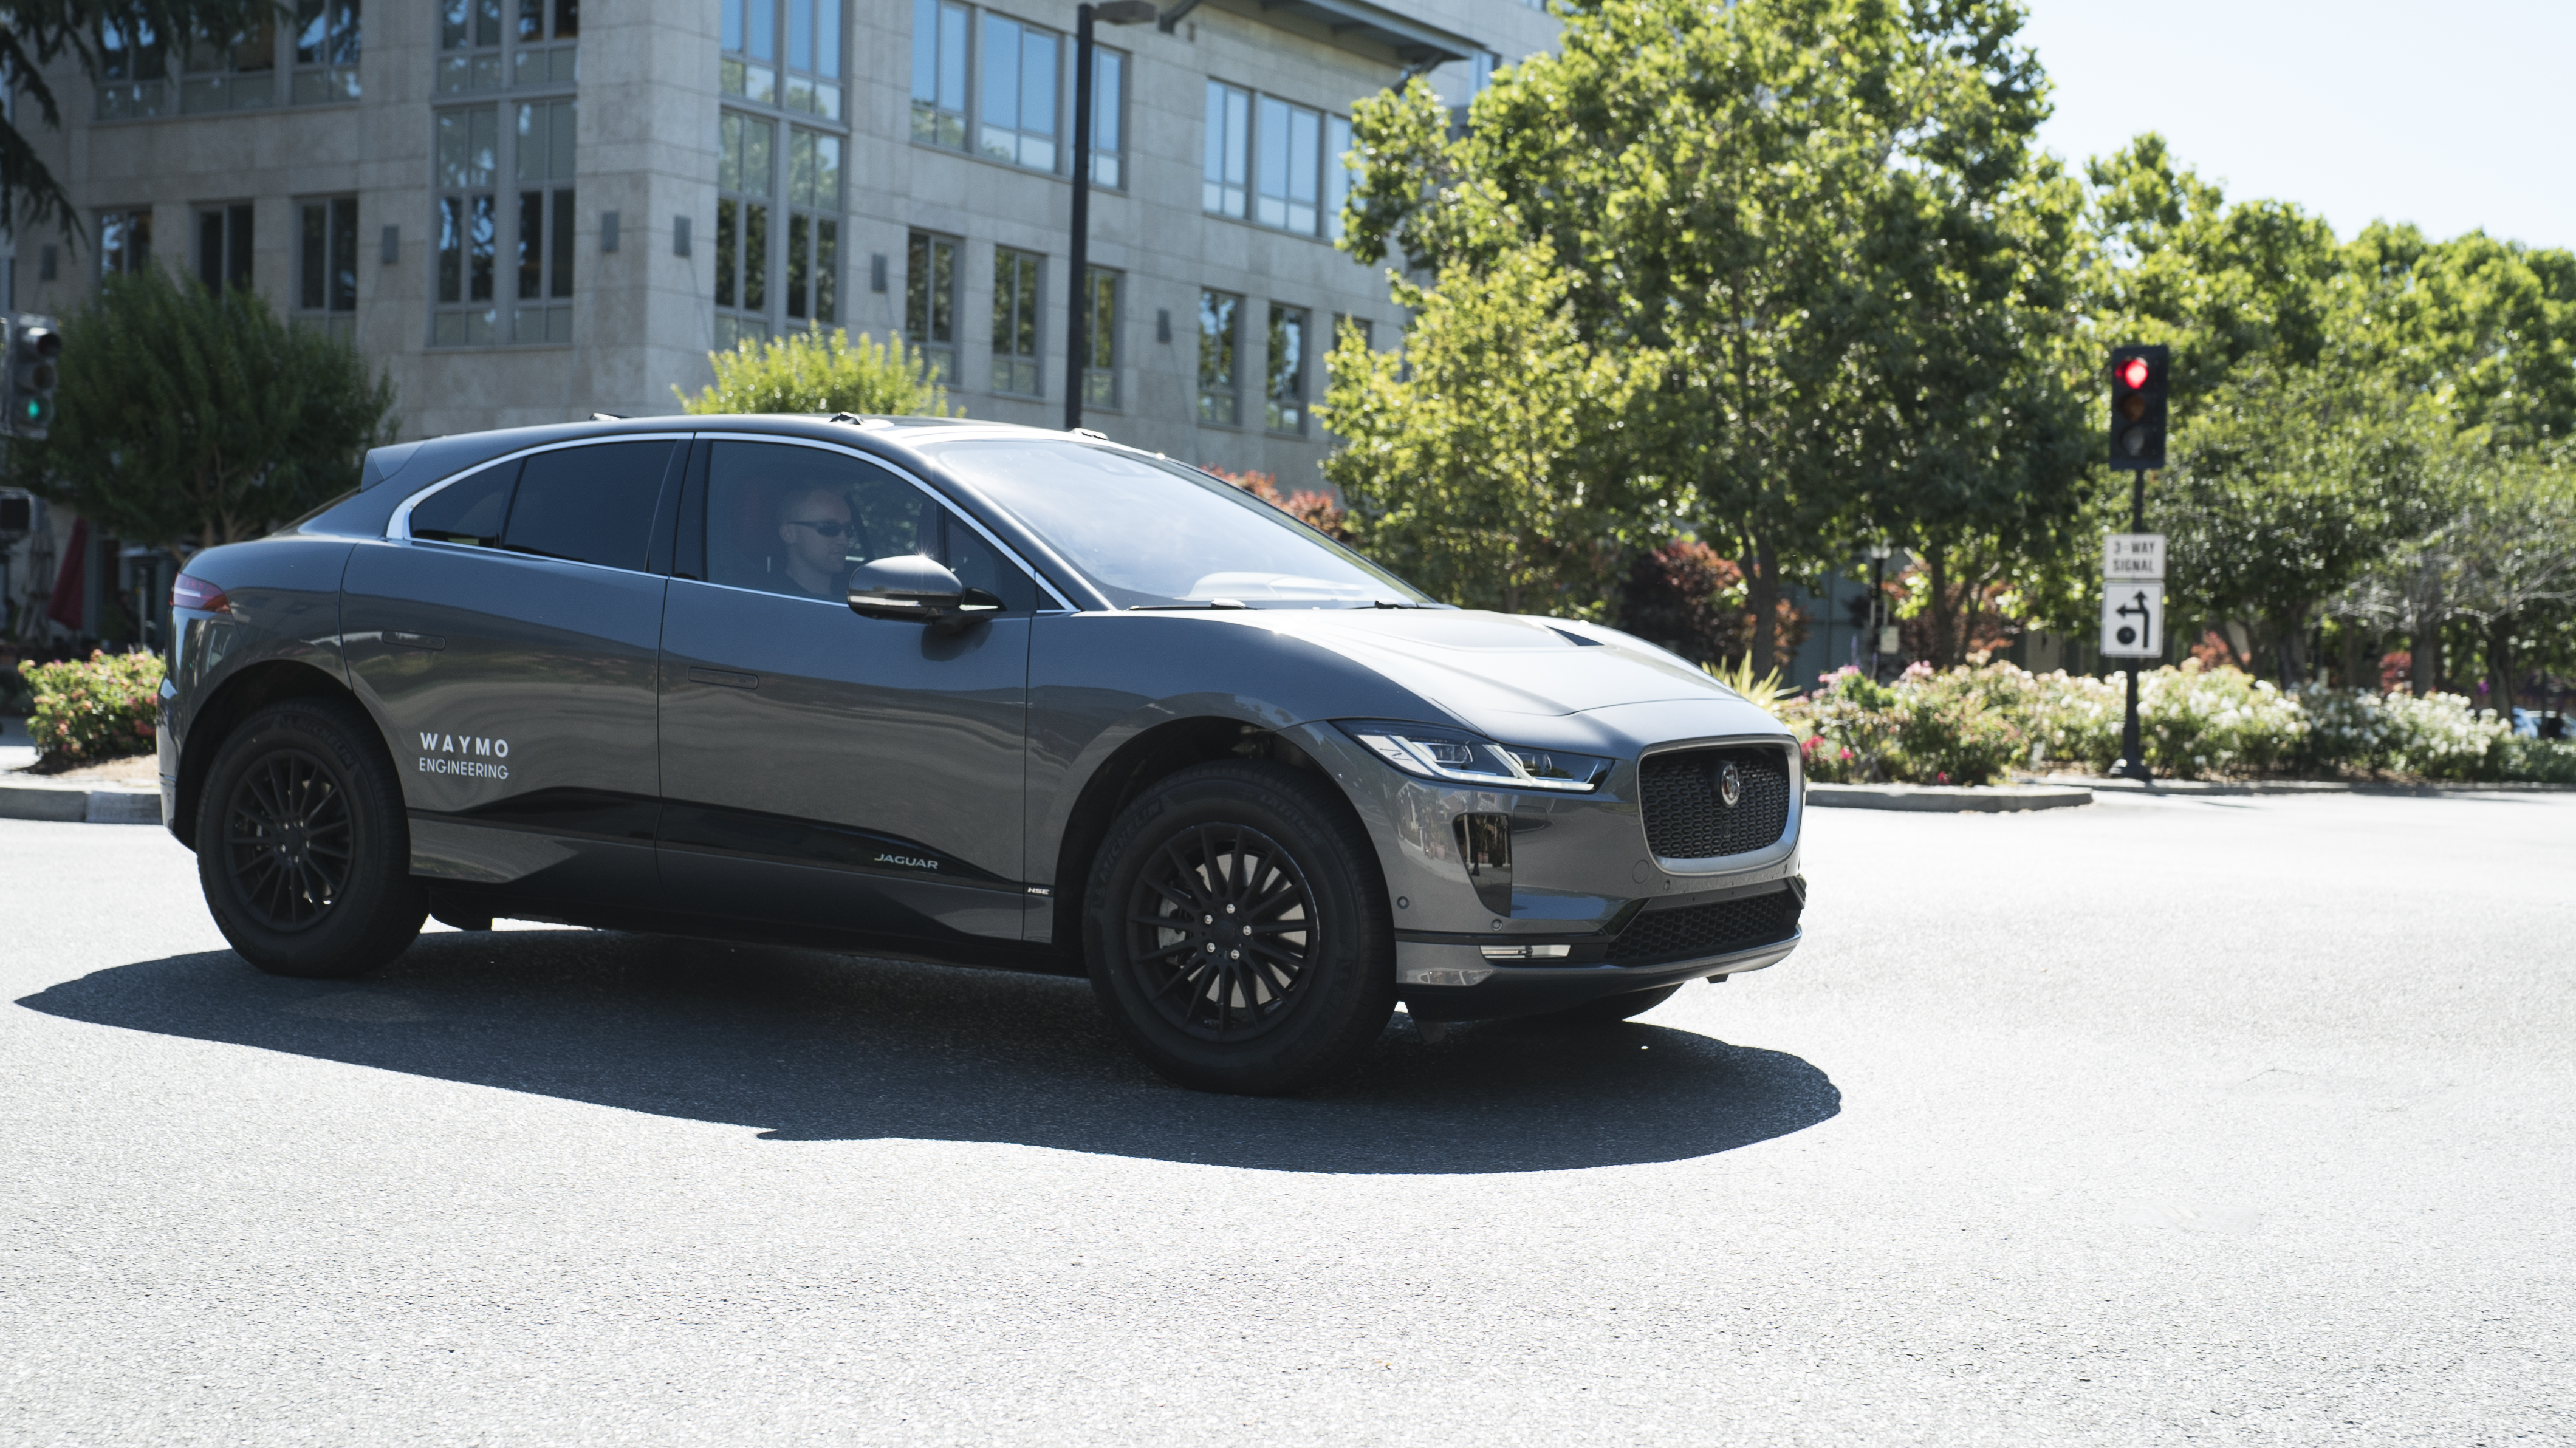 Waymo Announced In March A Strategic Partnership With Jaguar Land Rover To  Develop A Self Driving Electric I Pace For A Driverless Transportation  Service.